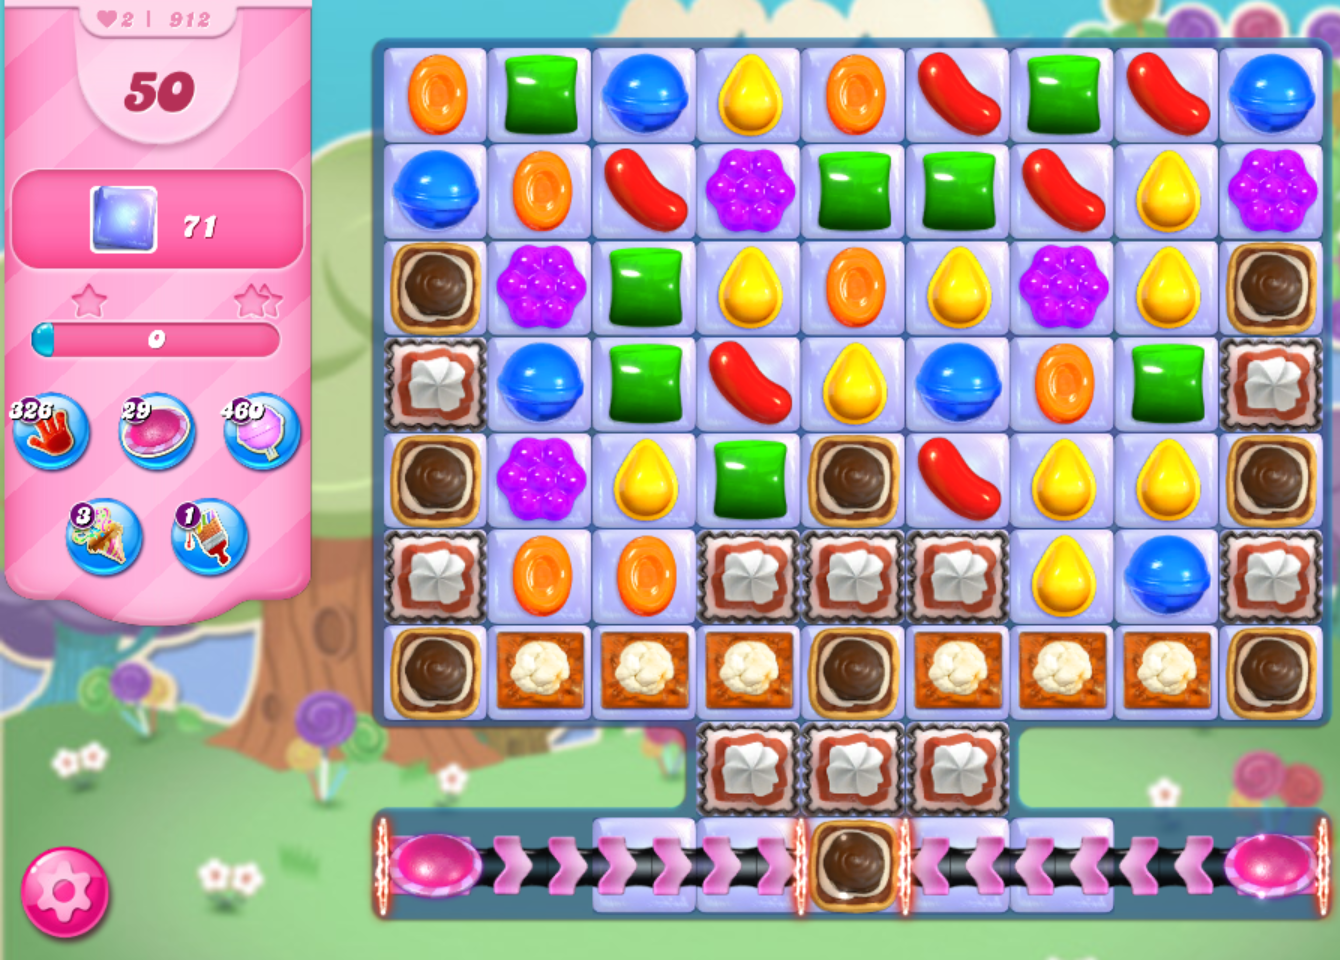 Candy Crush-Saga. Games/toys. Pepper Panic Saga. App Page. Shuffle Cats. Games/toys. Scrubby Dubby Saga. App Page. Candy Crush. Video. Candy Crush Saga. 11 September at 07:00 ·. The star of the show is...YOU! ⭐⭐ Play all new levels, out now!